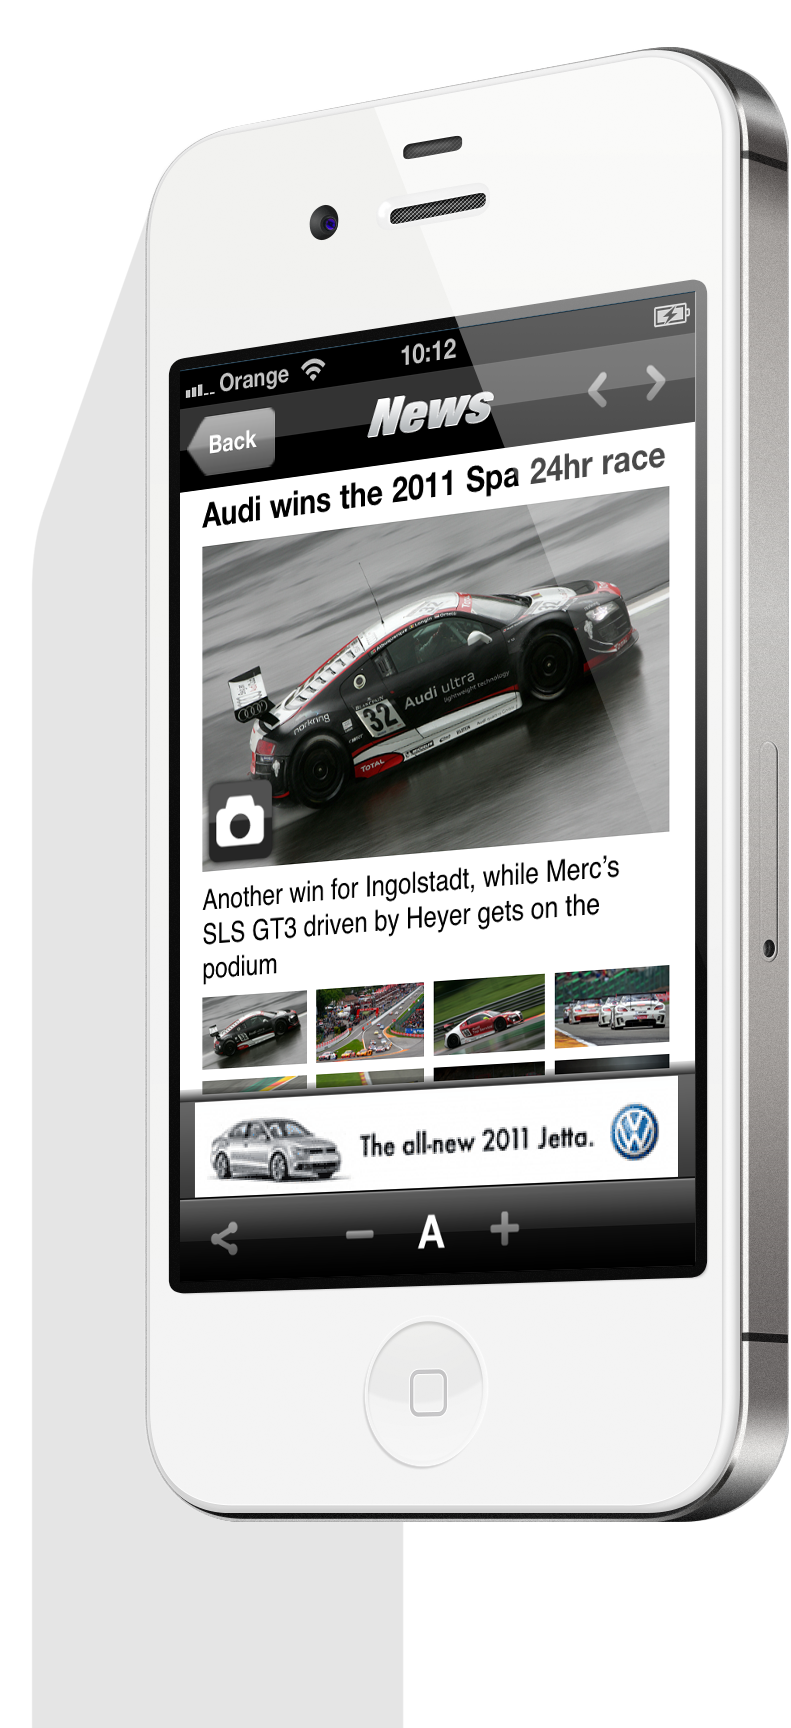 Top Gear Mobile App Image